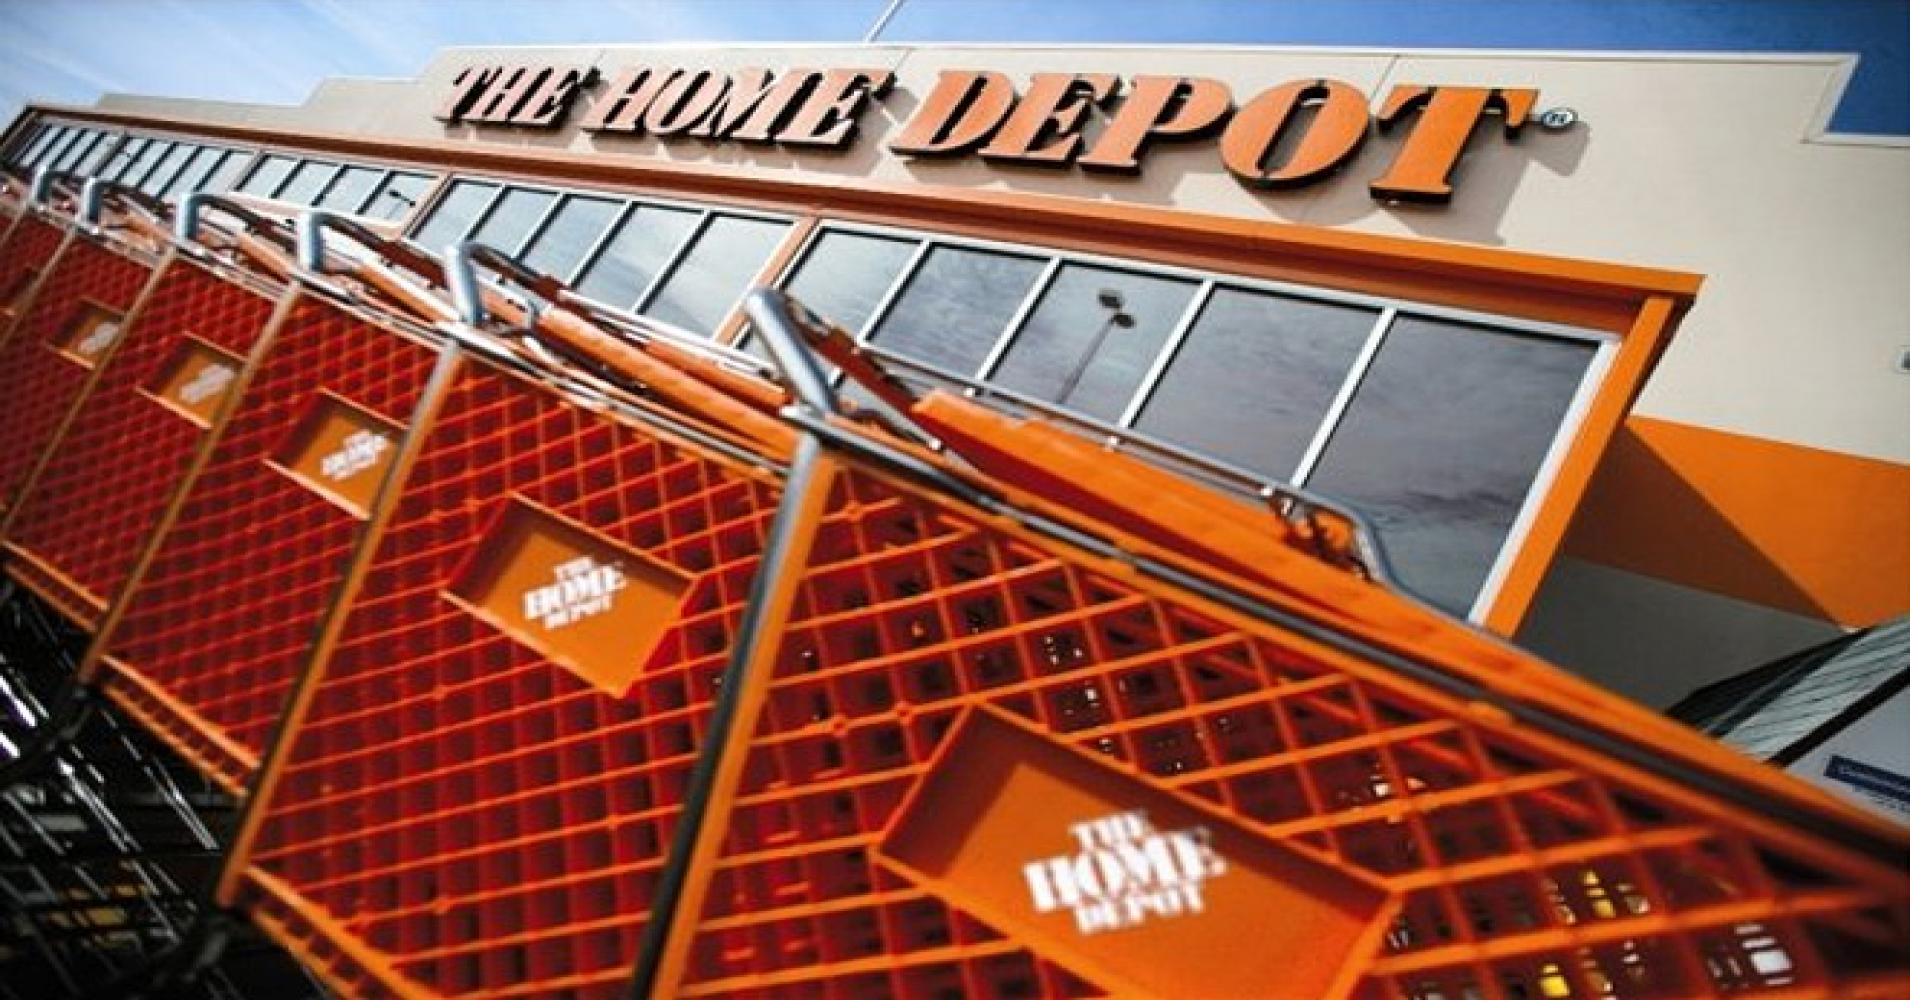 Baystreetca Home Depot Stock Is Sinking After Positive Q2 Earnings